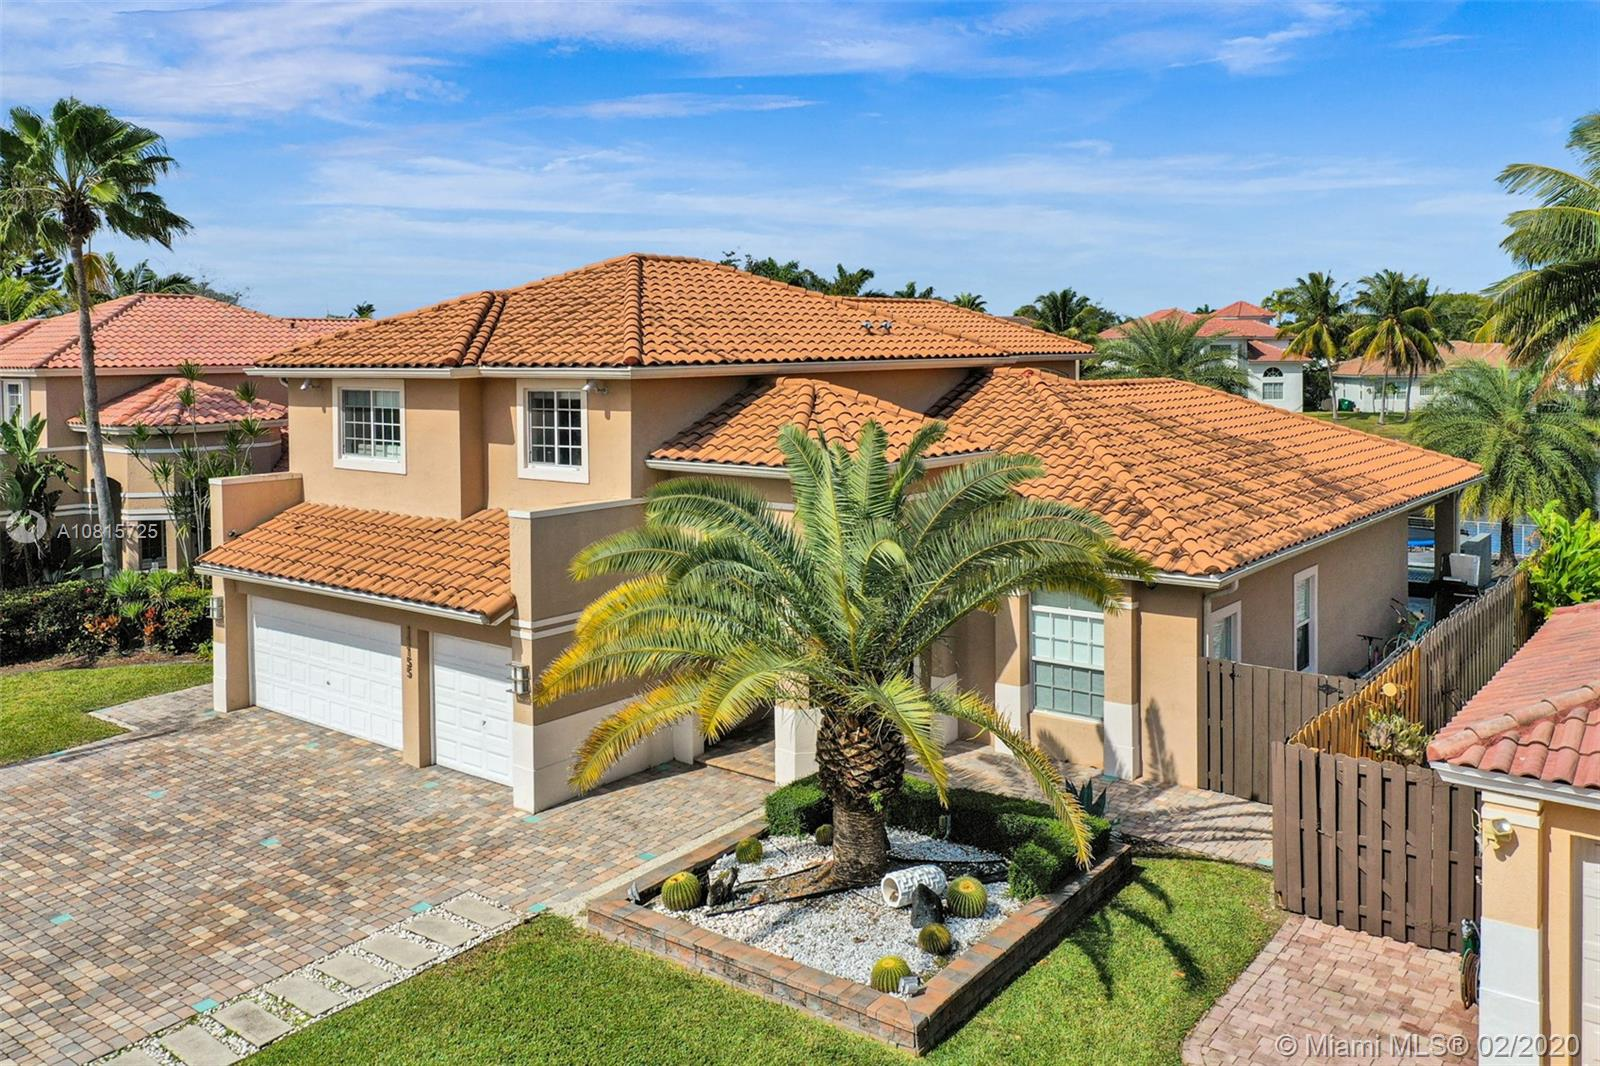 11155 NW 70th St, Doral, Florida